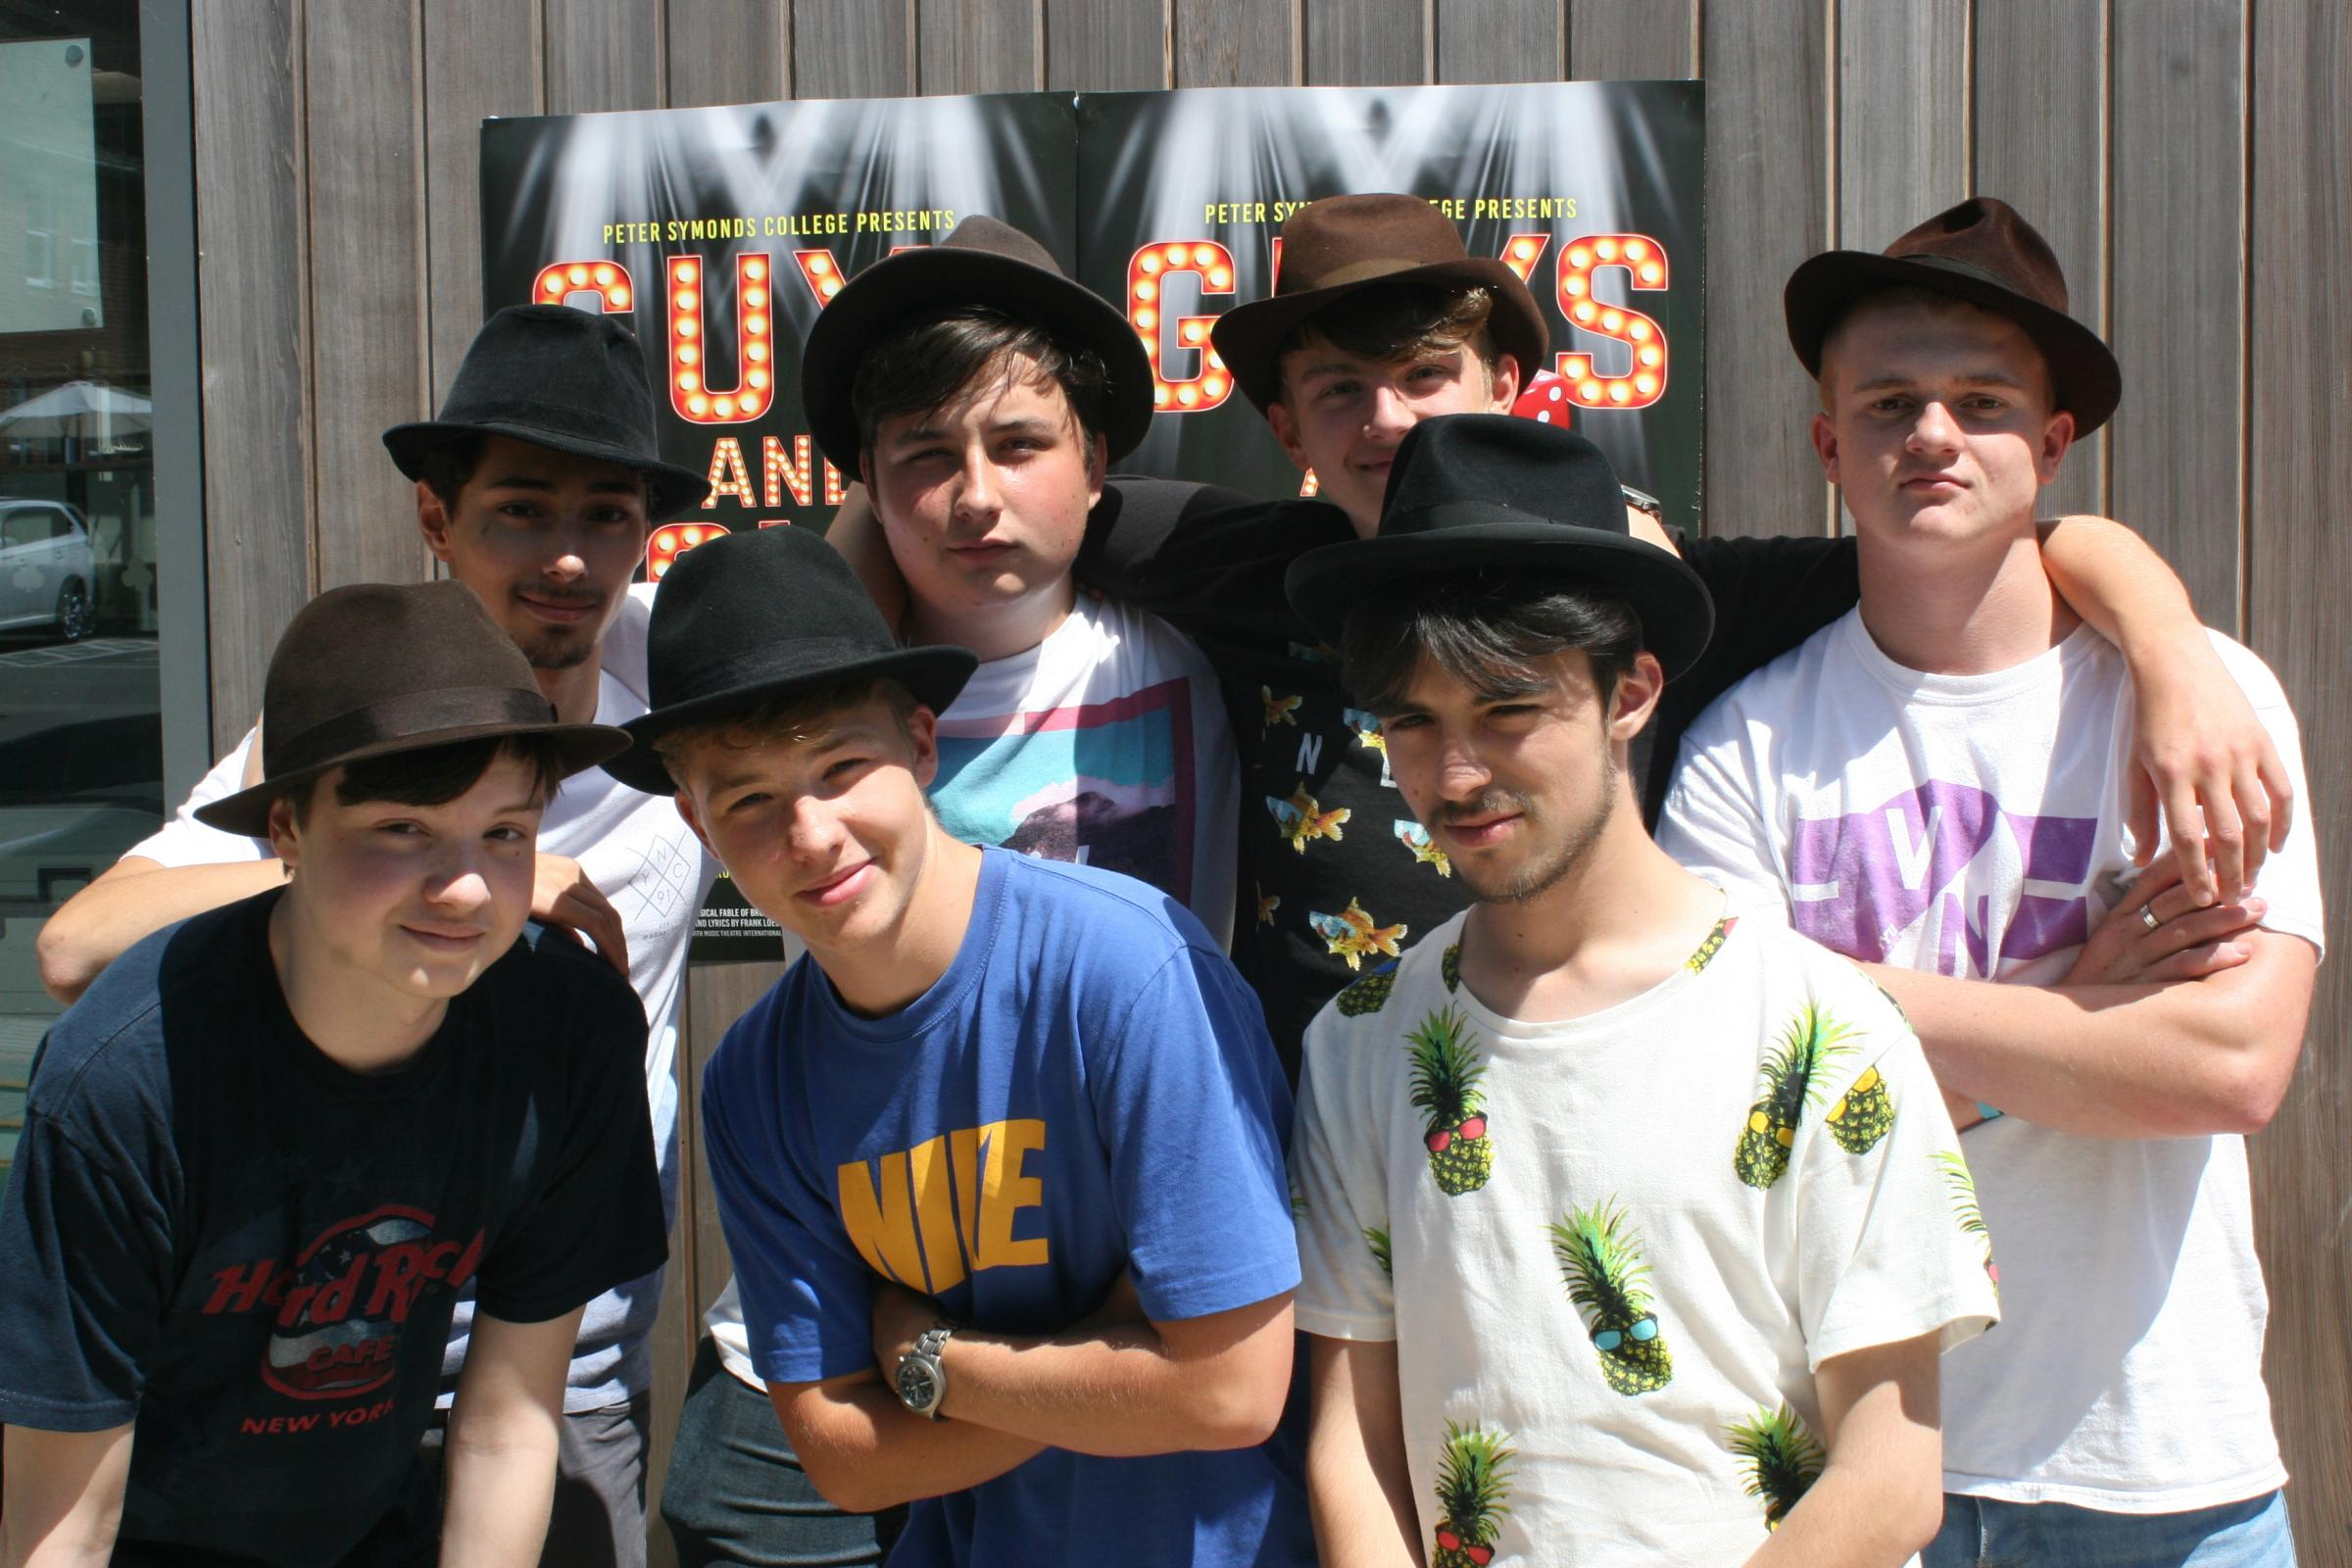 Peter Symonds students in Guys & Dolls